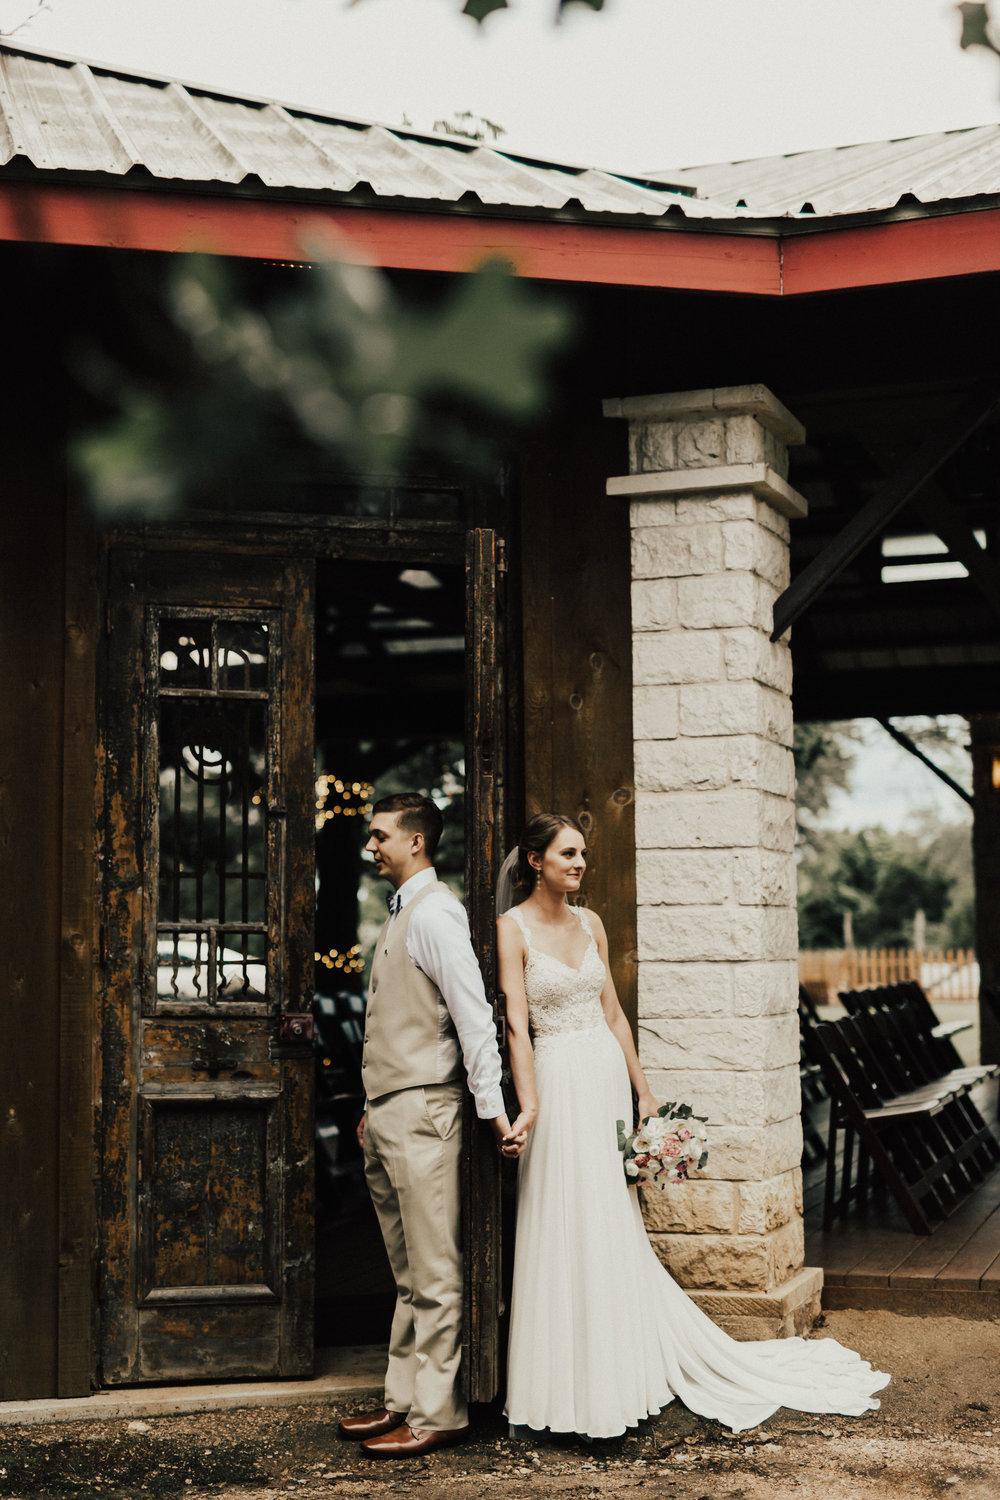 HAILEY-TIM-wedding-photographer-kindred-oaks-texas-326.jpg